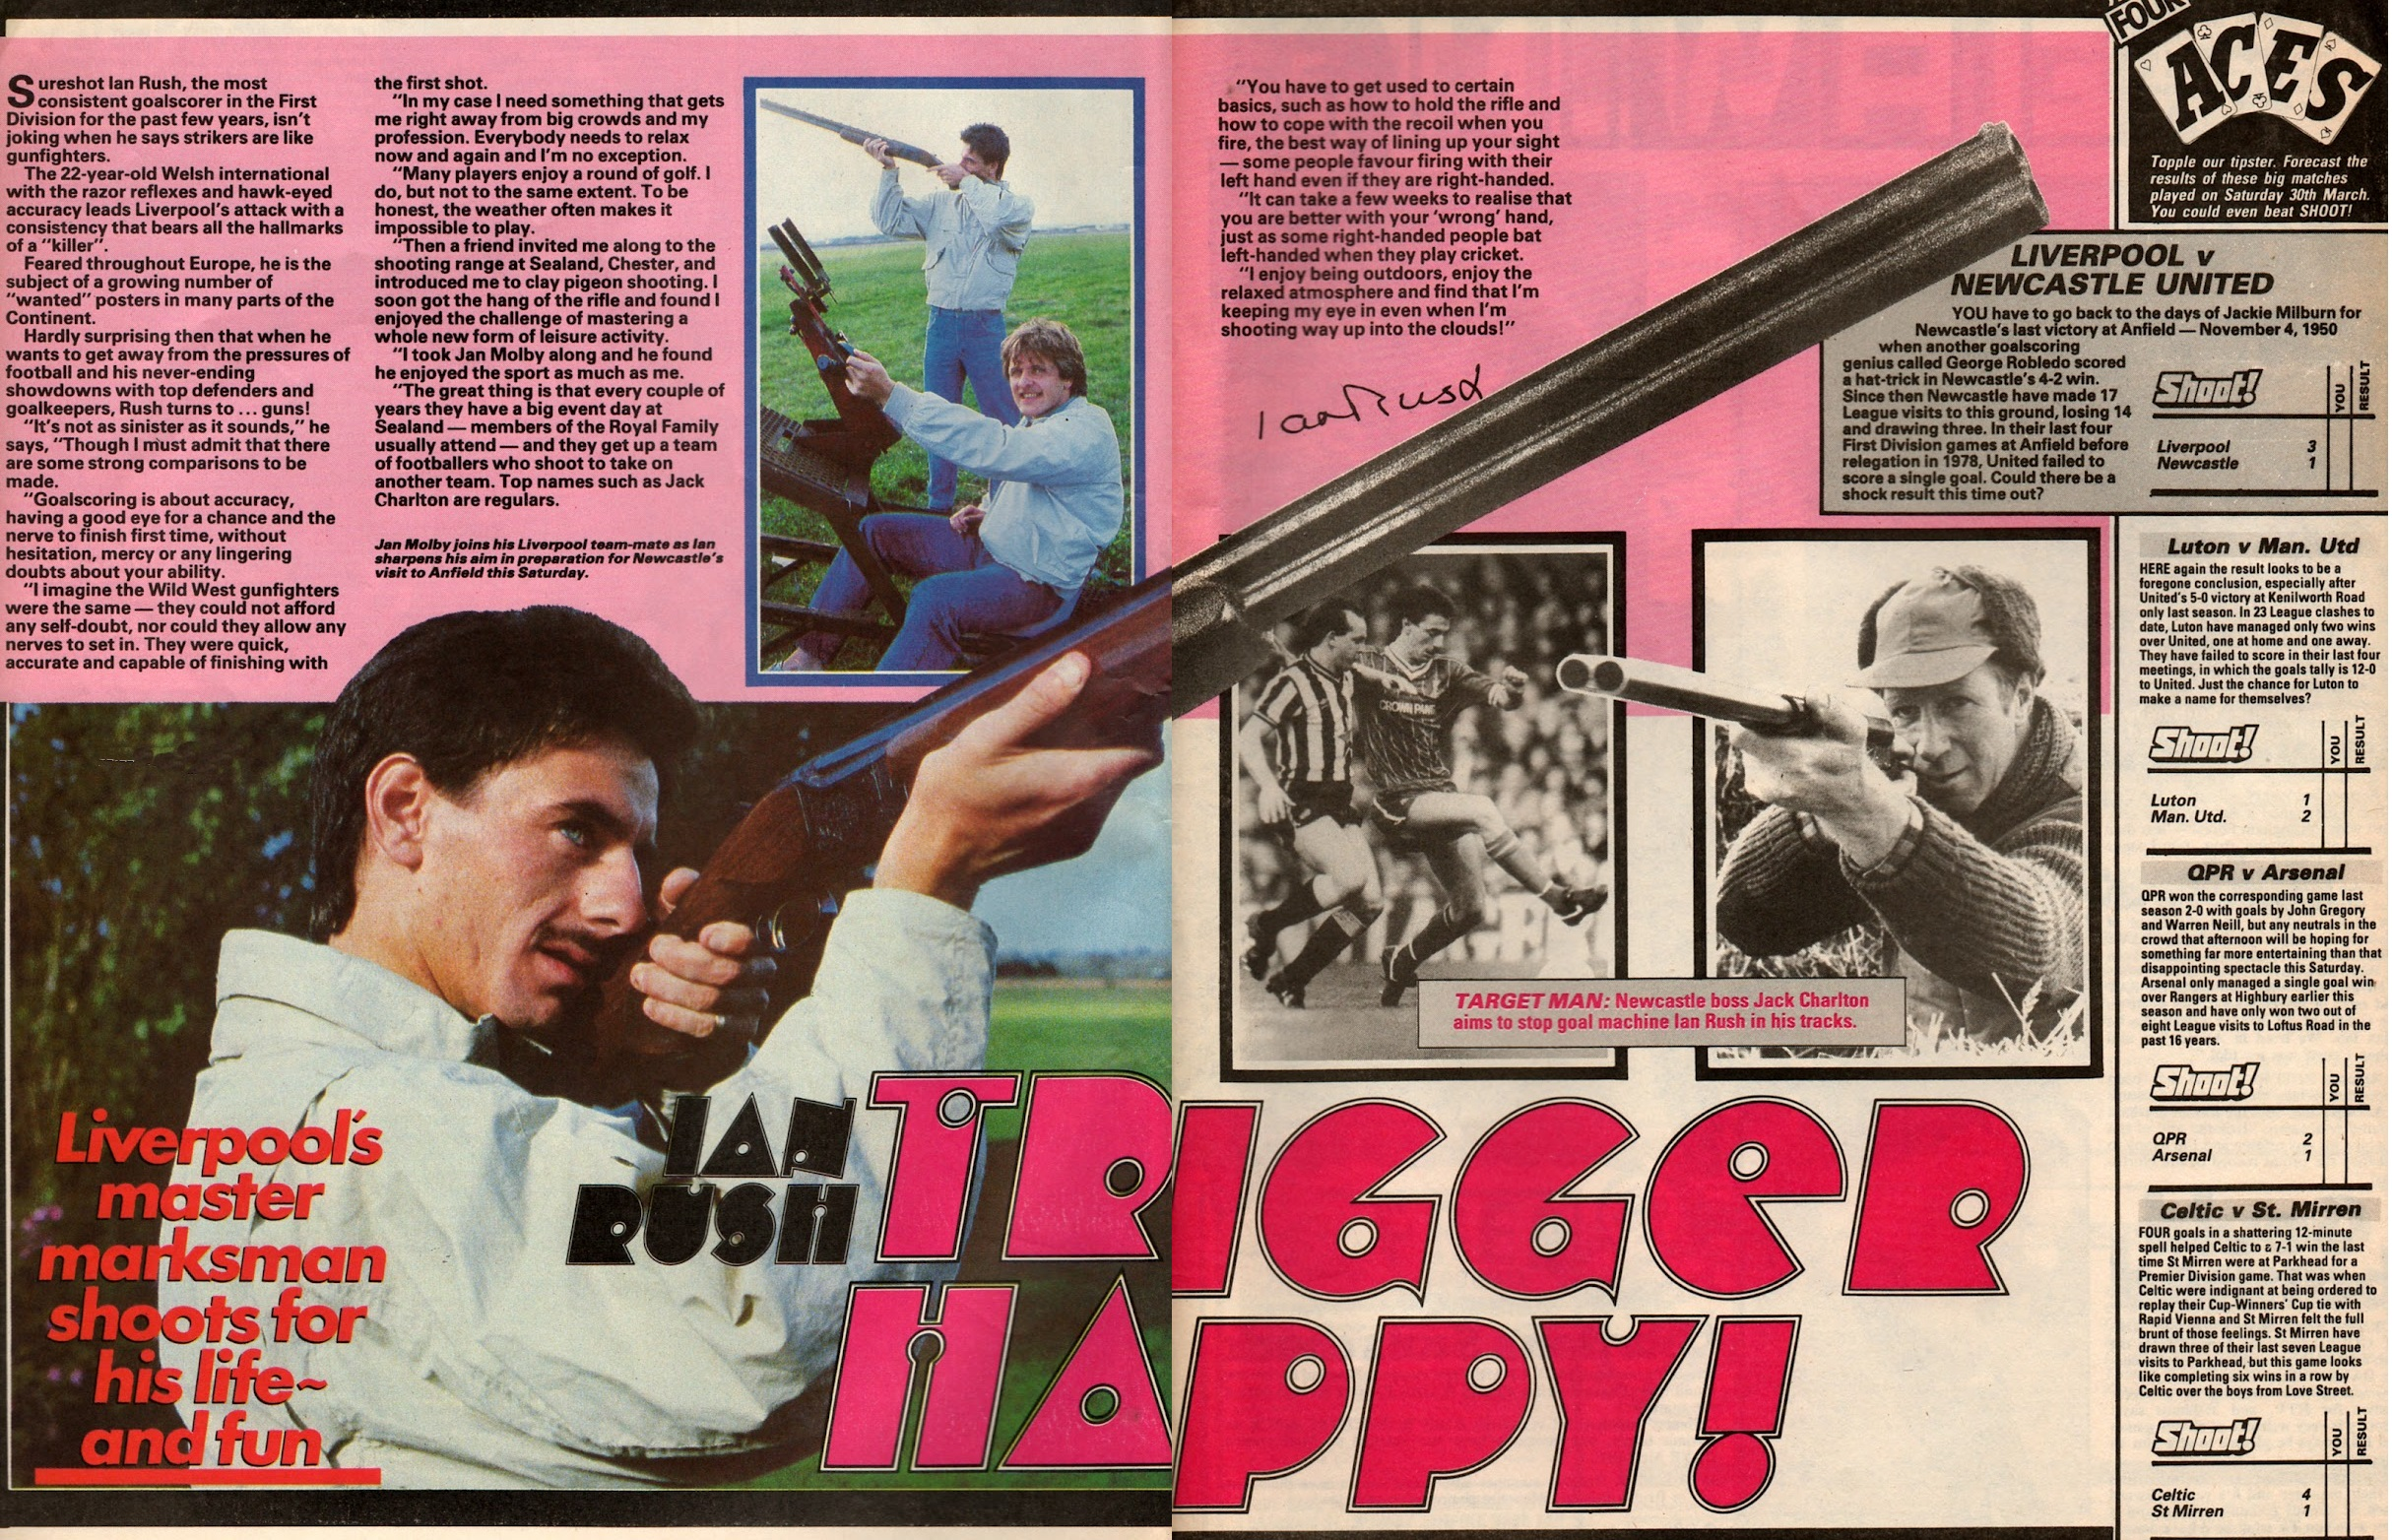 Trigger happy! from Shoot May 1985